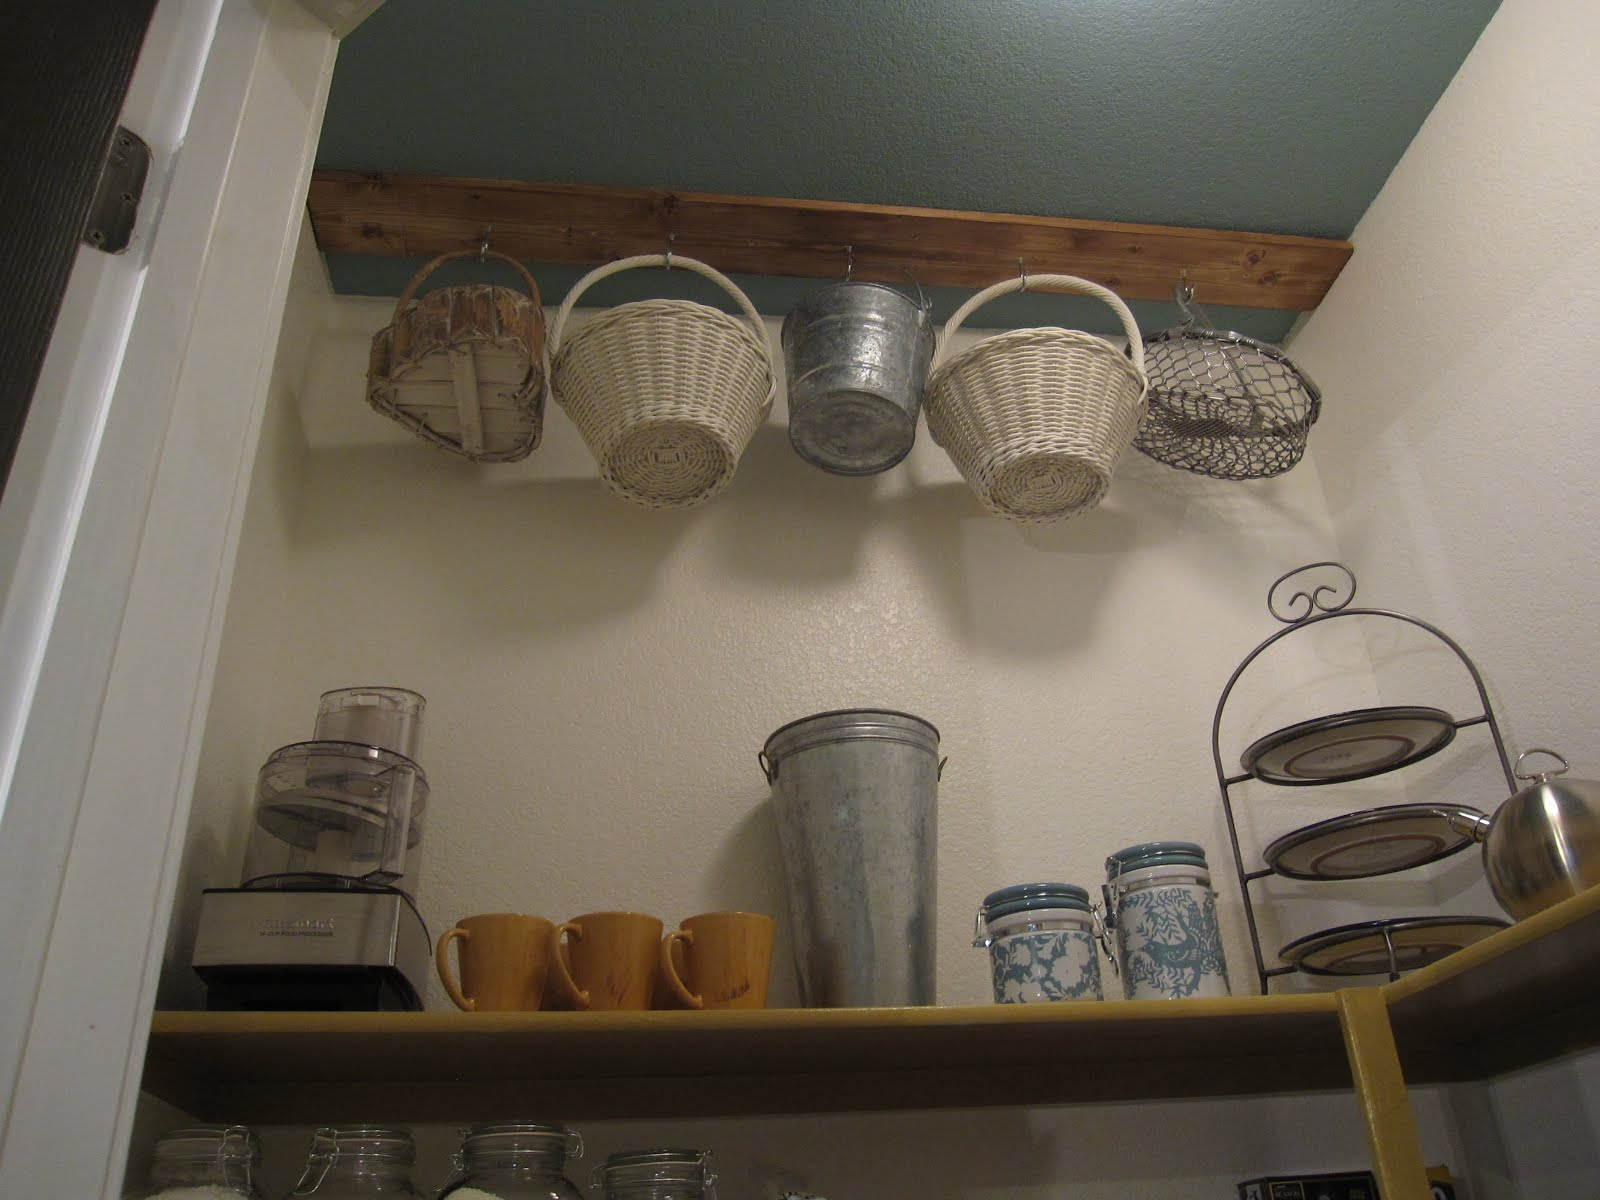 The decorating duchess pantry hooks for hanging storage